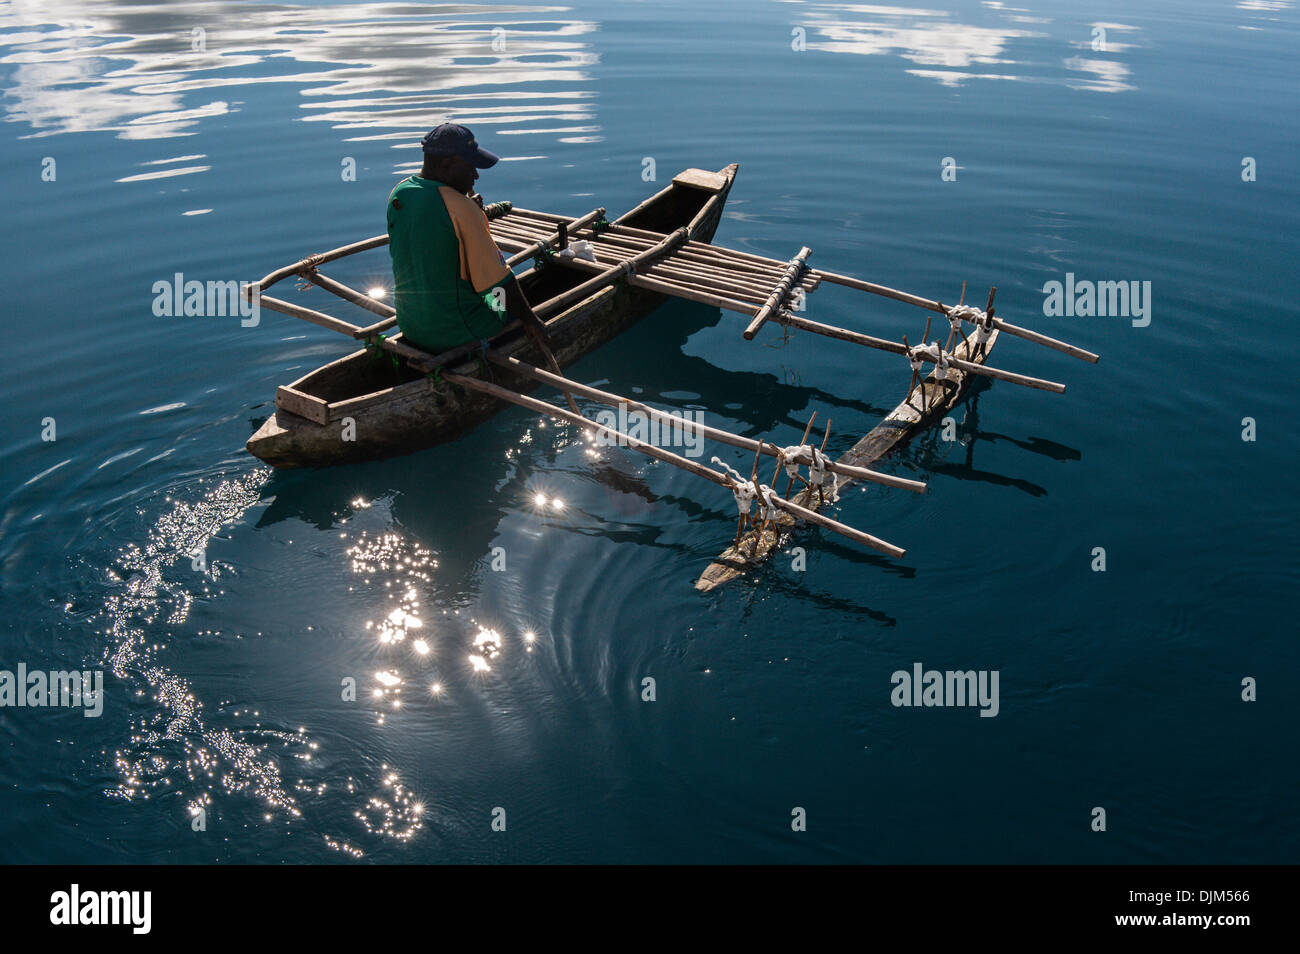 Frank, resident of Esema Bay, paddles pirogue, traditional dugout canoe with outrigger . Esema Bay, Efate, Vanuatu - Stock Image